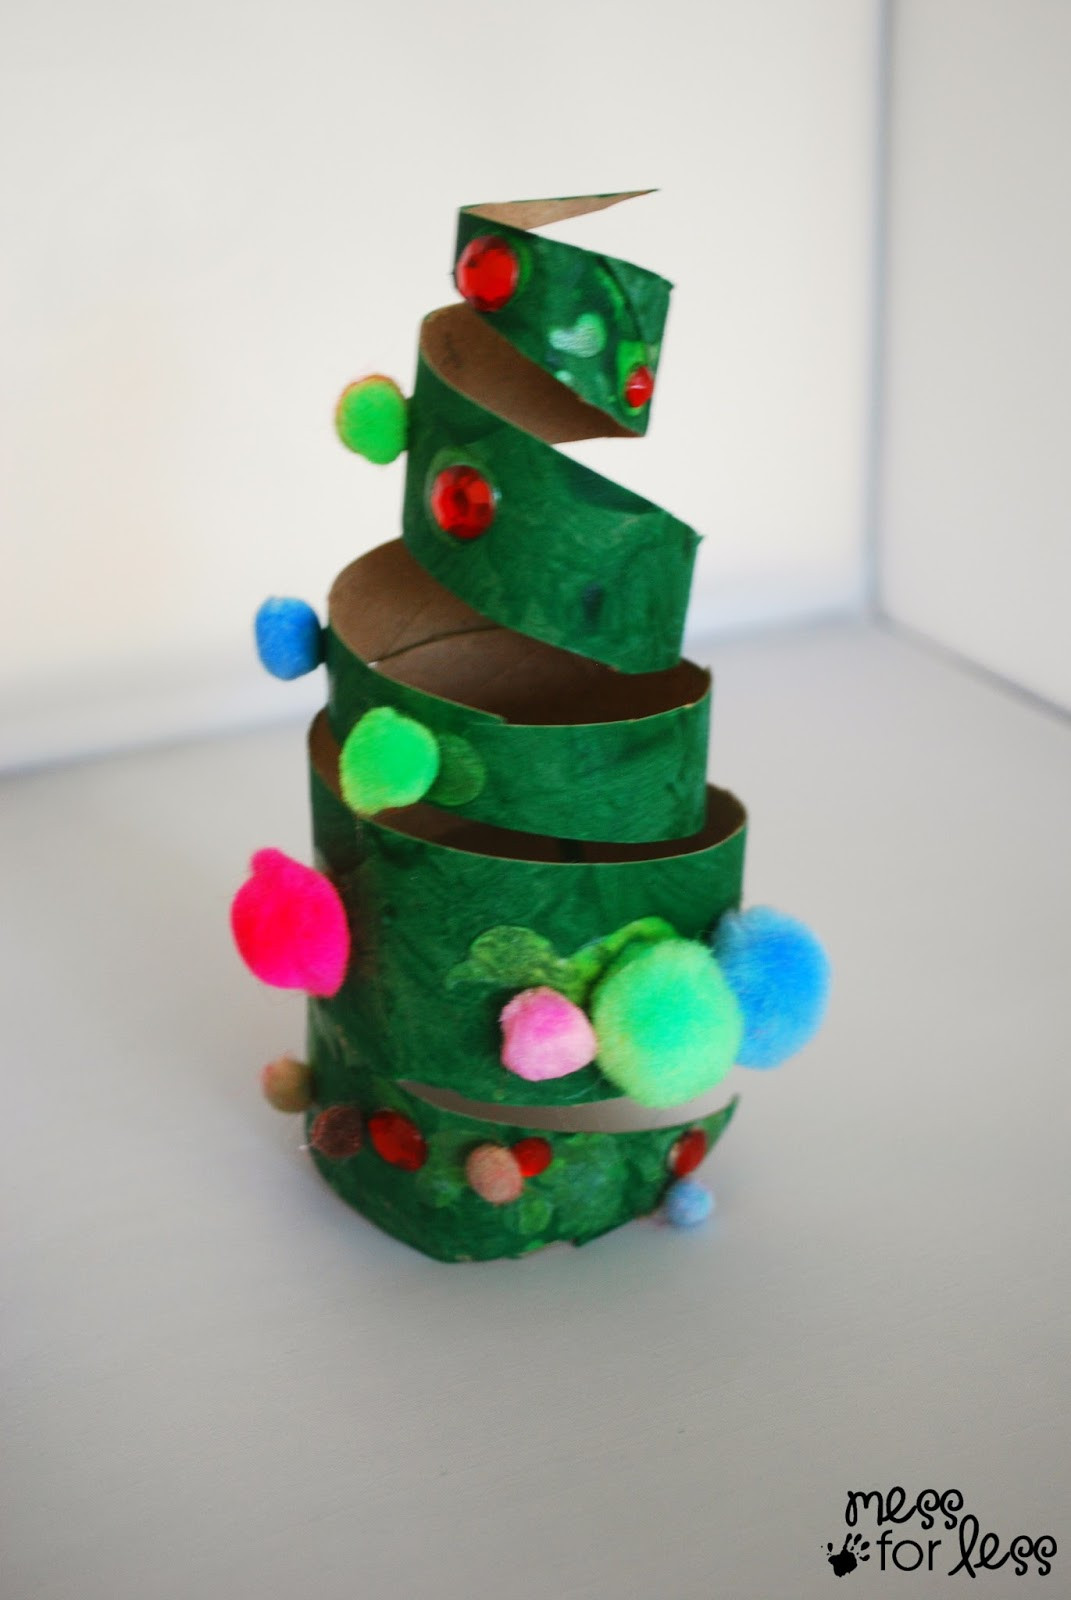 Best ideas about Holiday Projects For Kids . Save or Pin Christmas Crafts for Kids Cardboard Tube Christmas Tree Now.